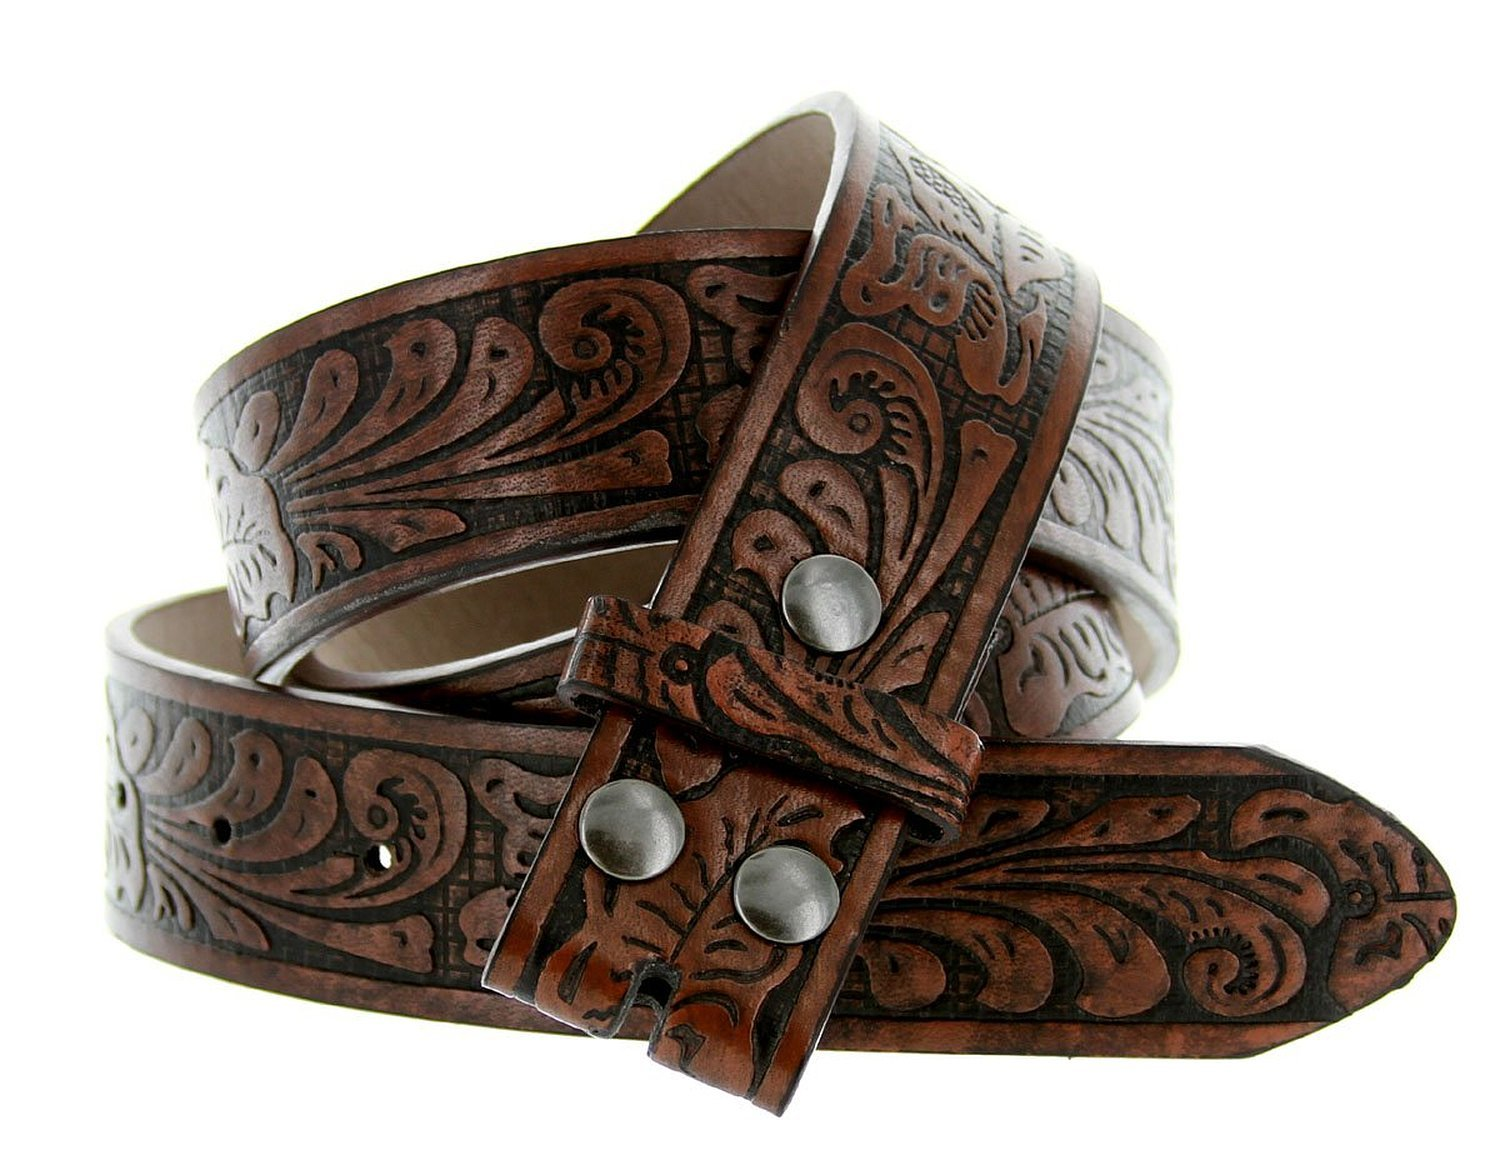 Western Embossed Tooled Floral Leather Snap On Belt Strap 38mm 1-1/2″ (S (32″), Brown)